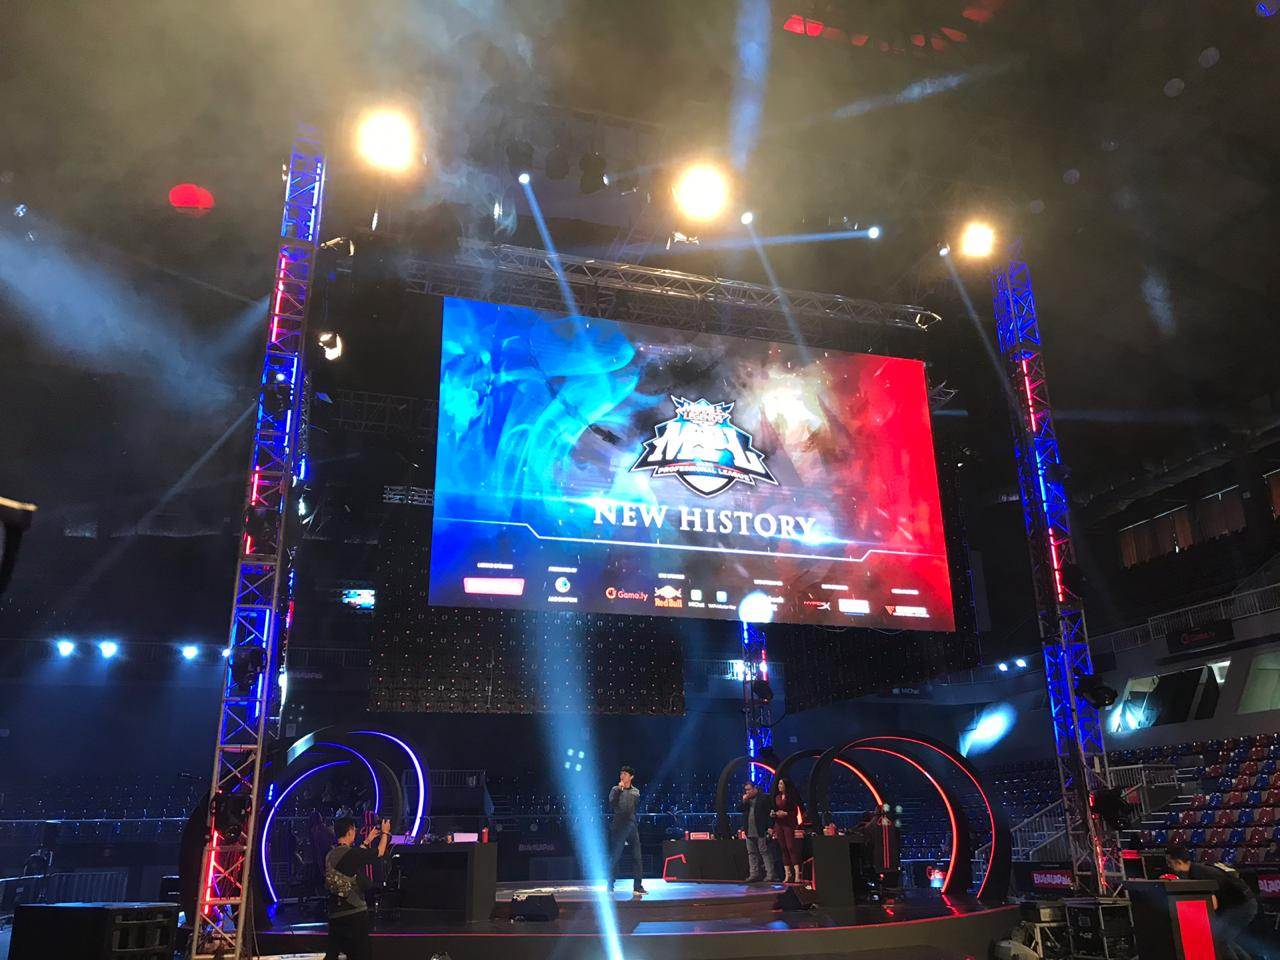 Saksikan Pertarungan Sengit 8 Tim Mobile Legends Terbaik di Indonesia pada Babak Final Mobile Legends!